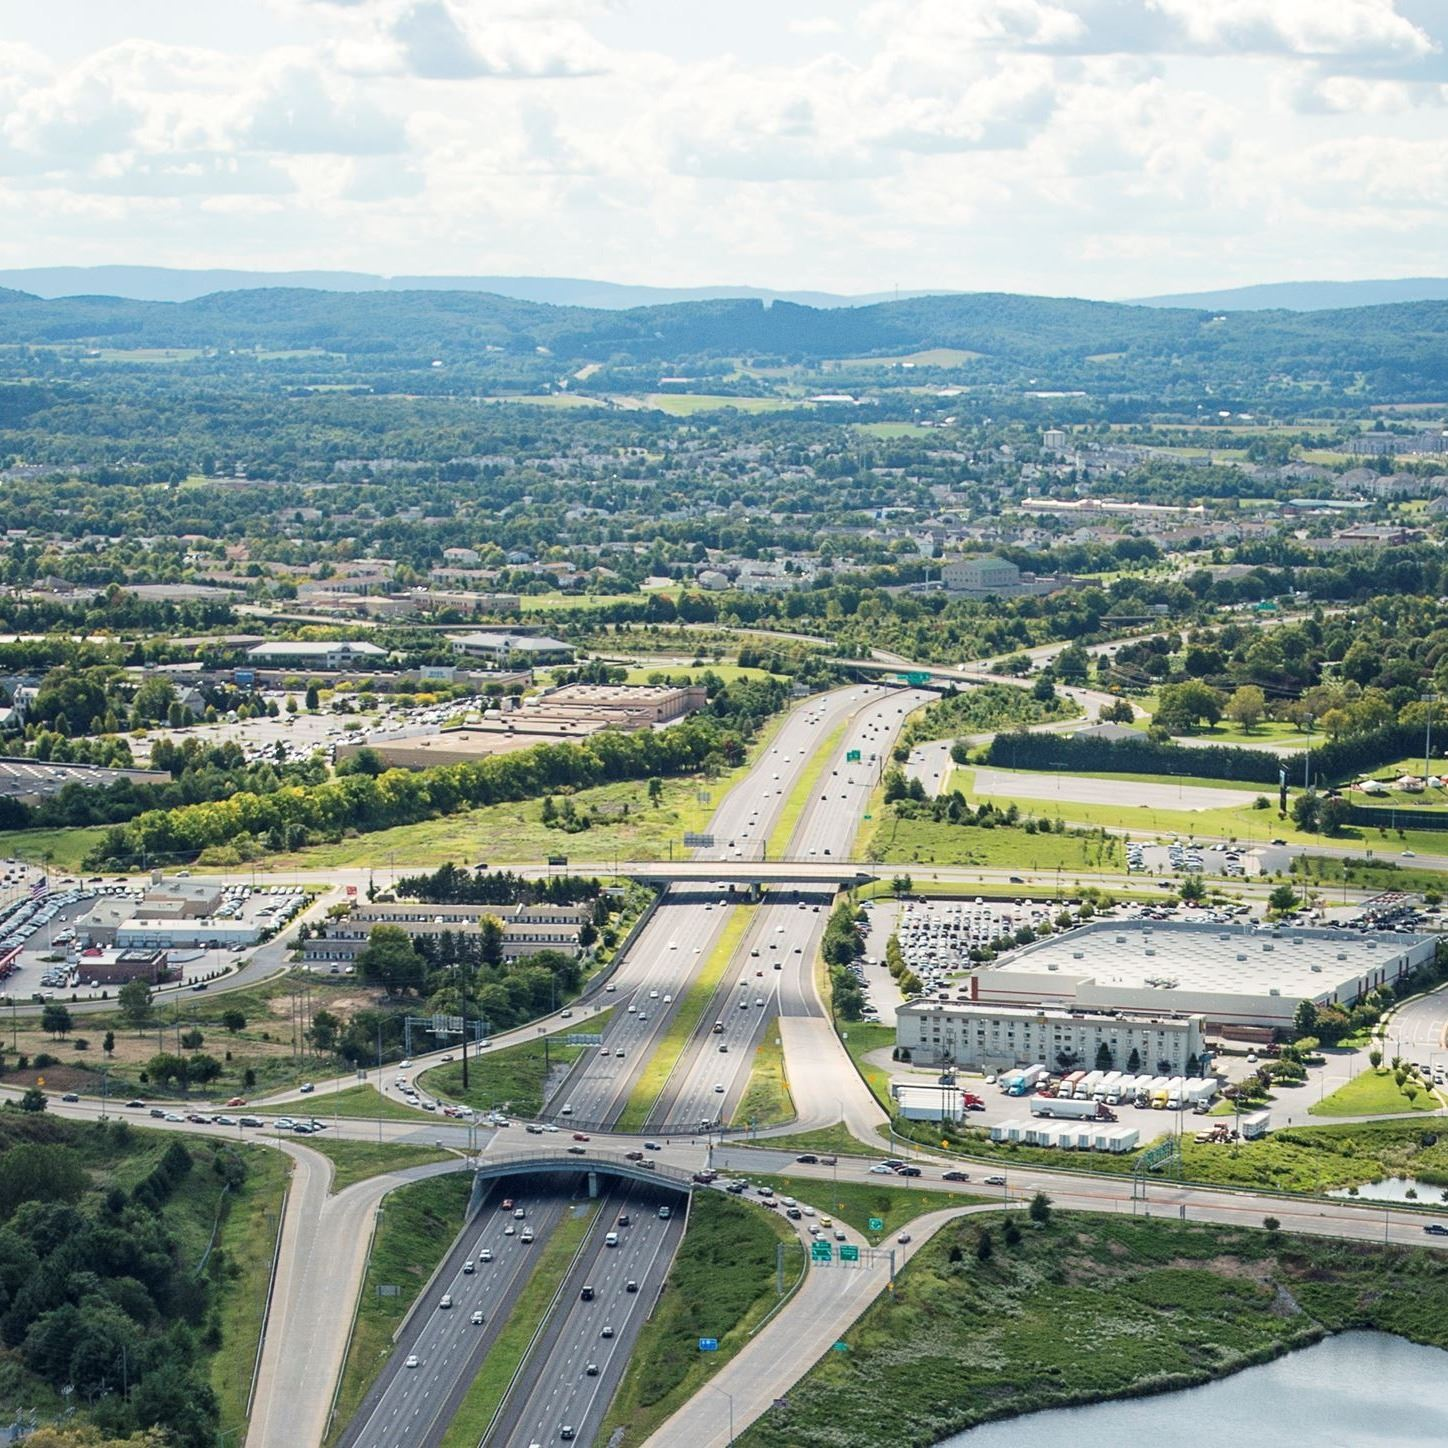 Aerial view of busy interstate and buildings with rolling hills in the distance